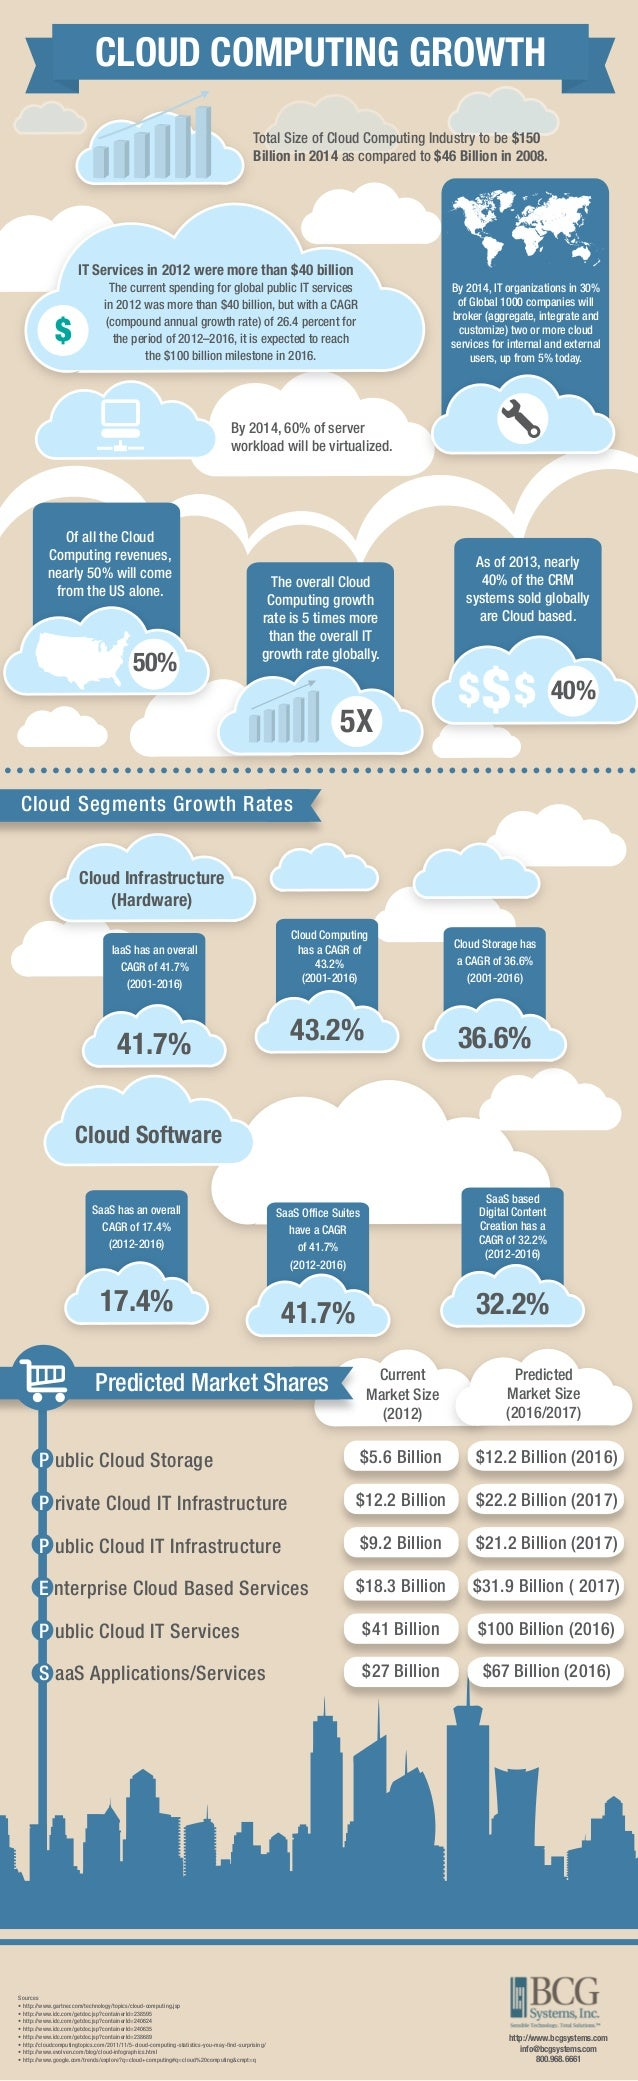 CLOUD COMPUTING GROWTH Total Size of Cloud Computing Industry to be $150 Billion in 2014 as compared to $46 Billion in 200...